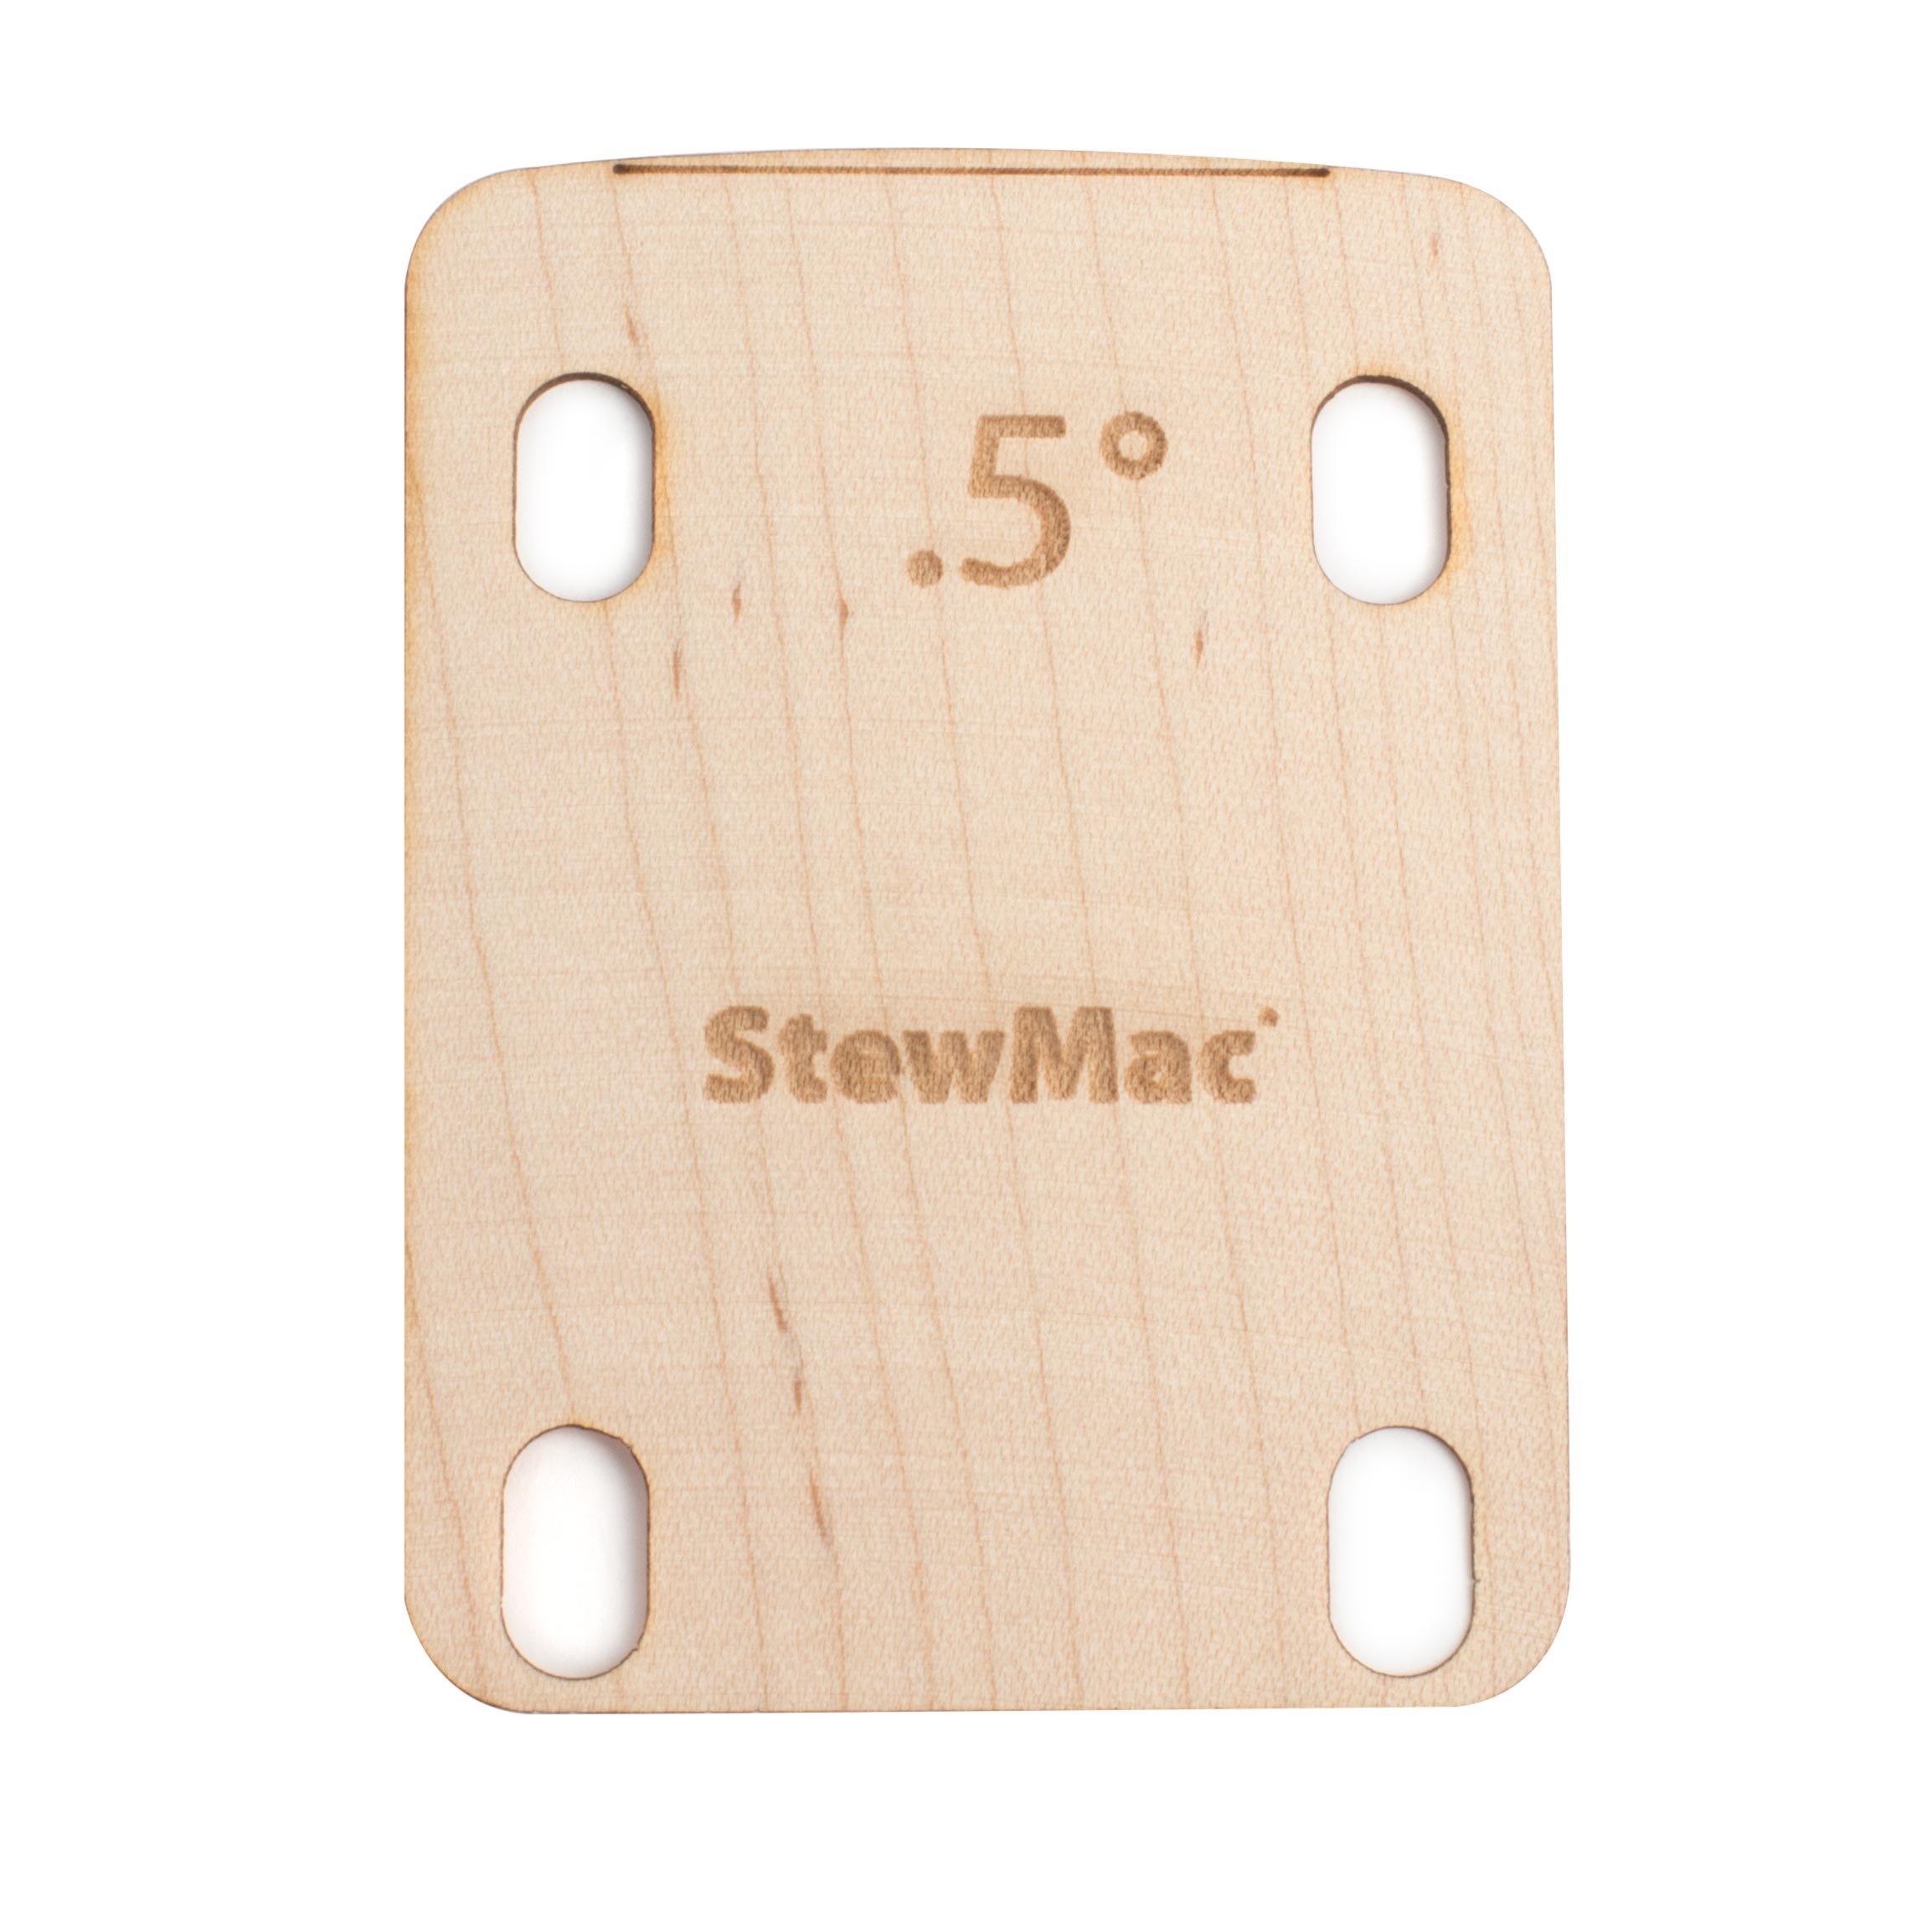 StewMac Neck Shims for Guitar, Shaped - 6 Pack of 0.50 Degree Shims